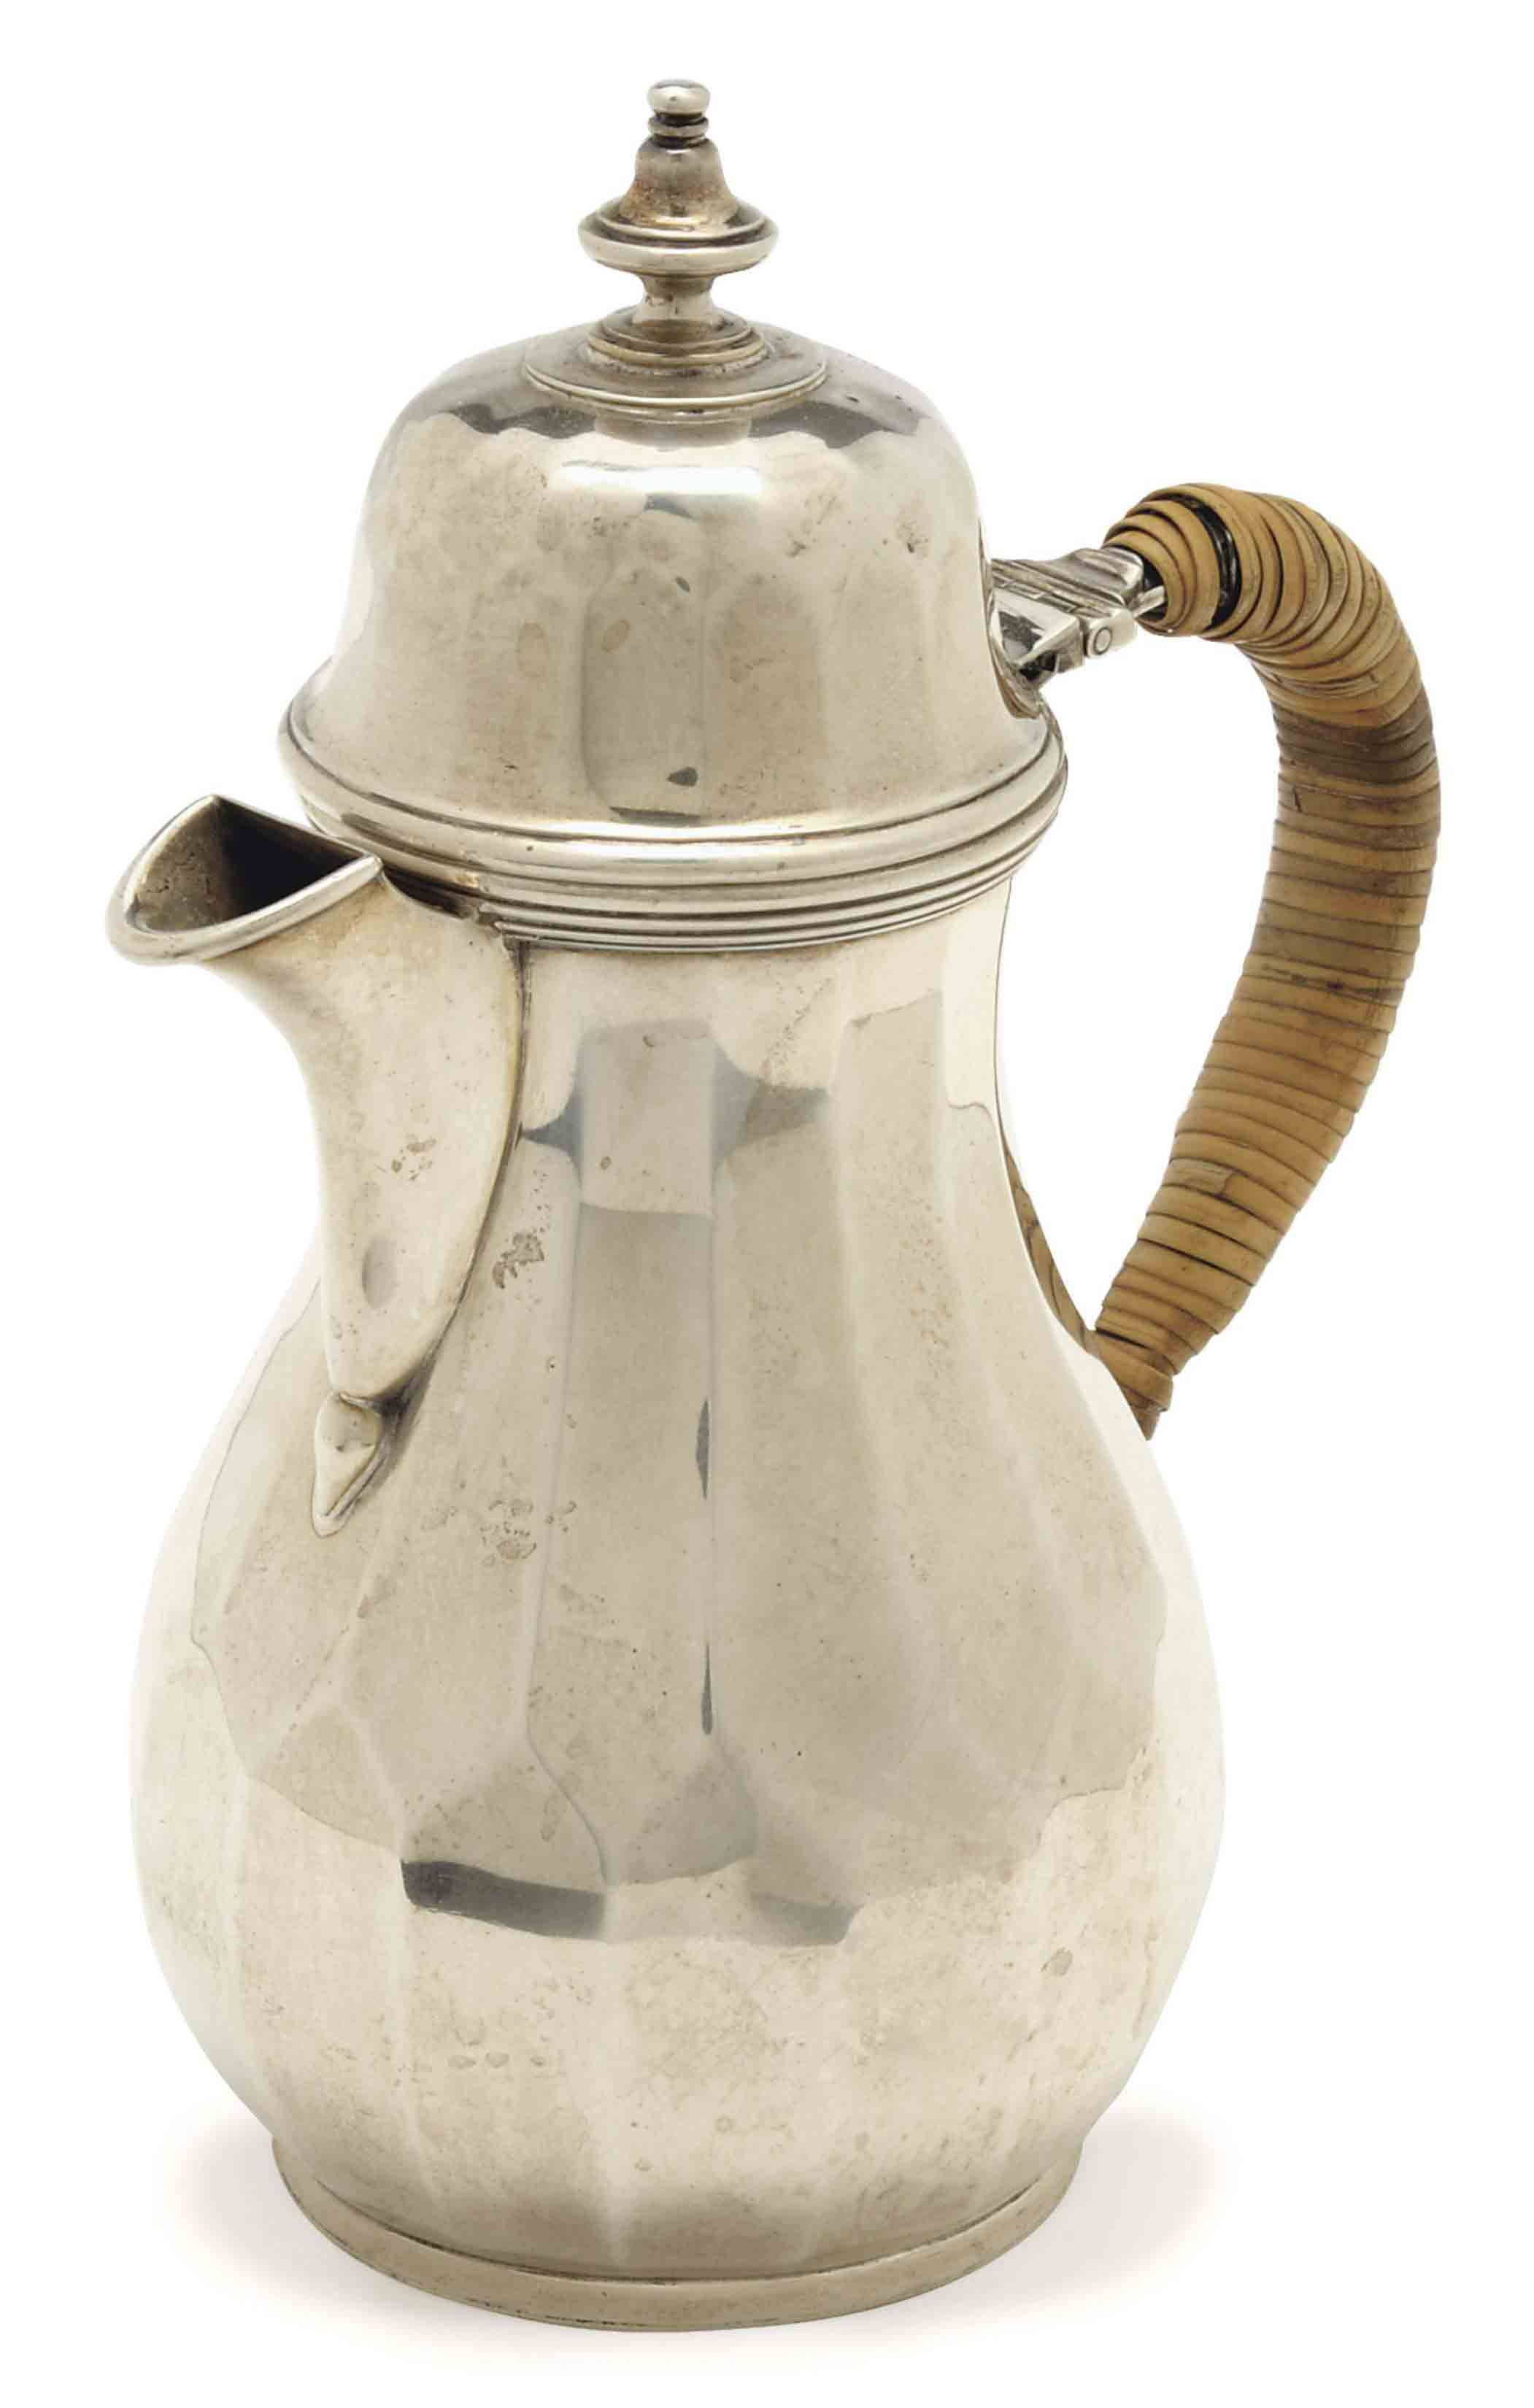 A GEORGE V SILVER HOT MILK JUG WITH HINGED COVER AND CANE HANDLE,